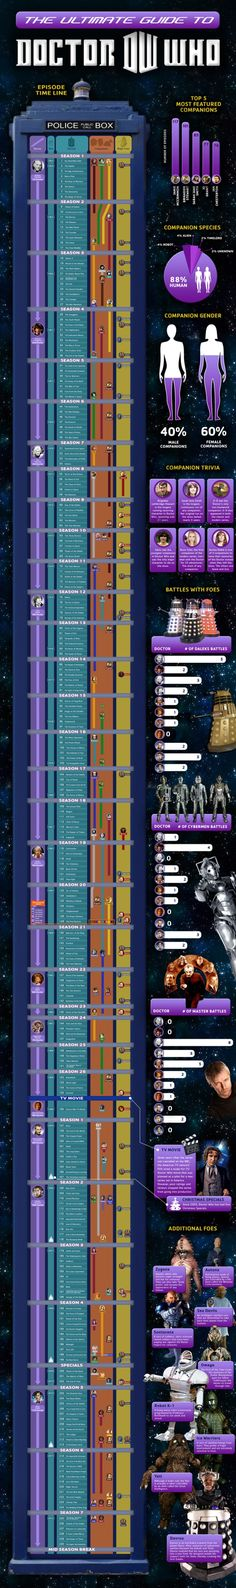 Doctor Who is so much more than #9, 10, & 11!!!! Breakdown of doctors, companions and monsters